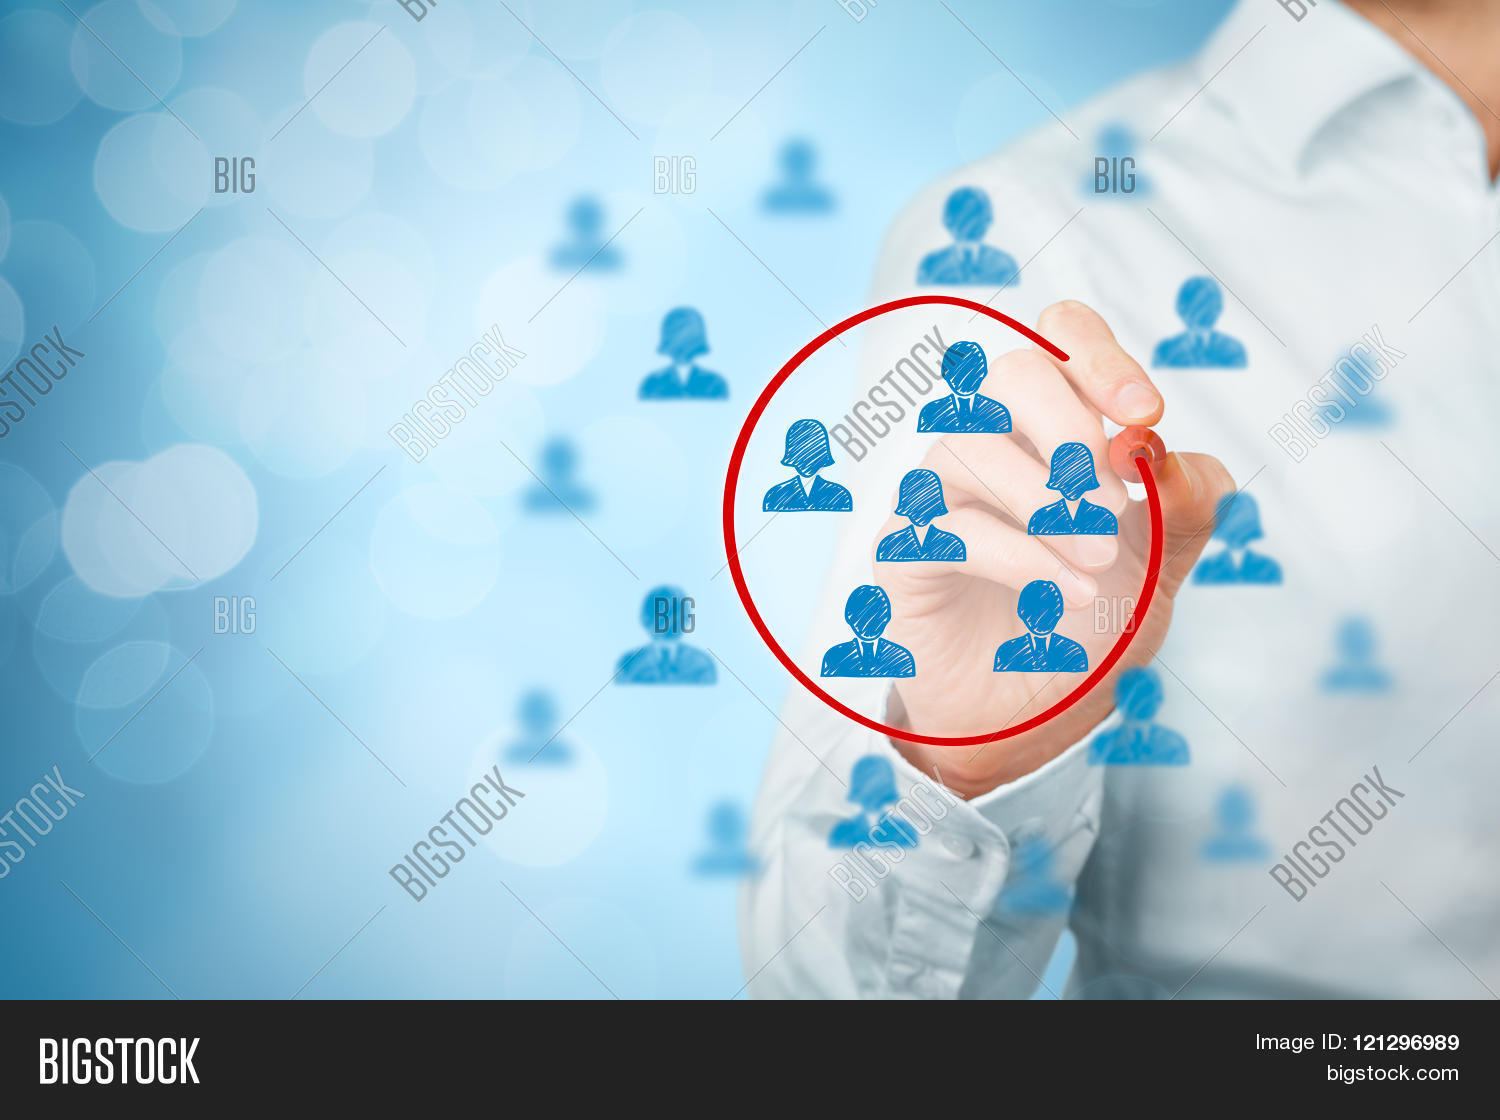 Marketing Segmentation Image & Photo (Free Trial) | Bigstock